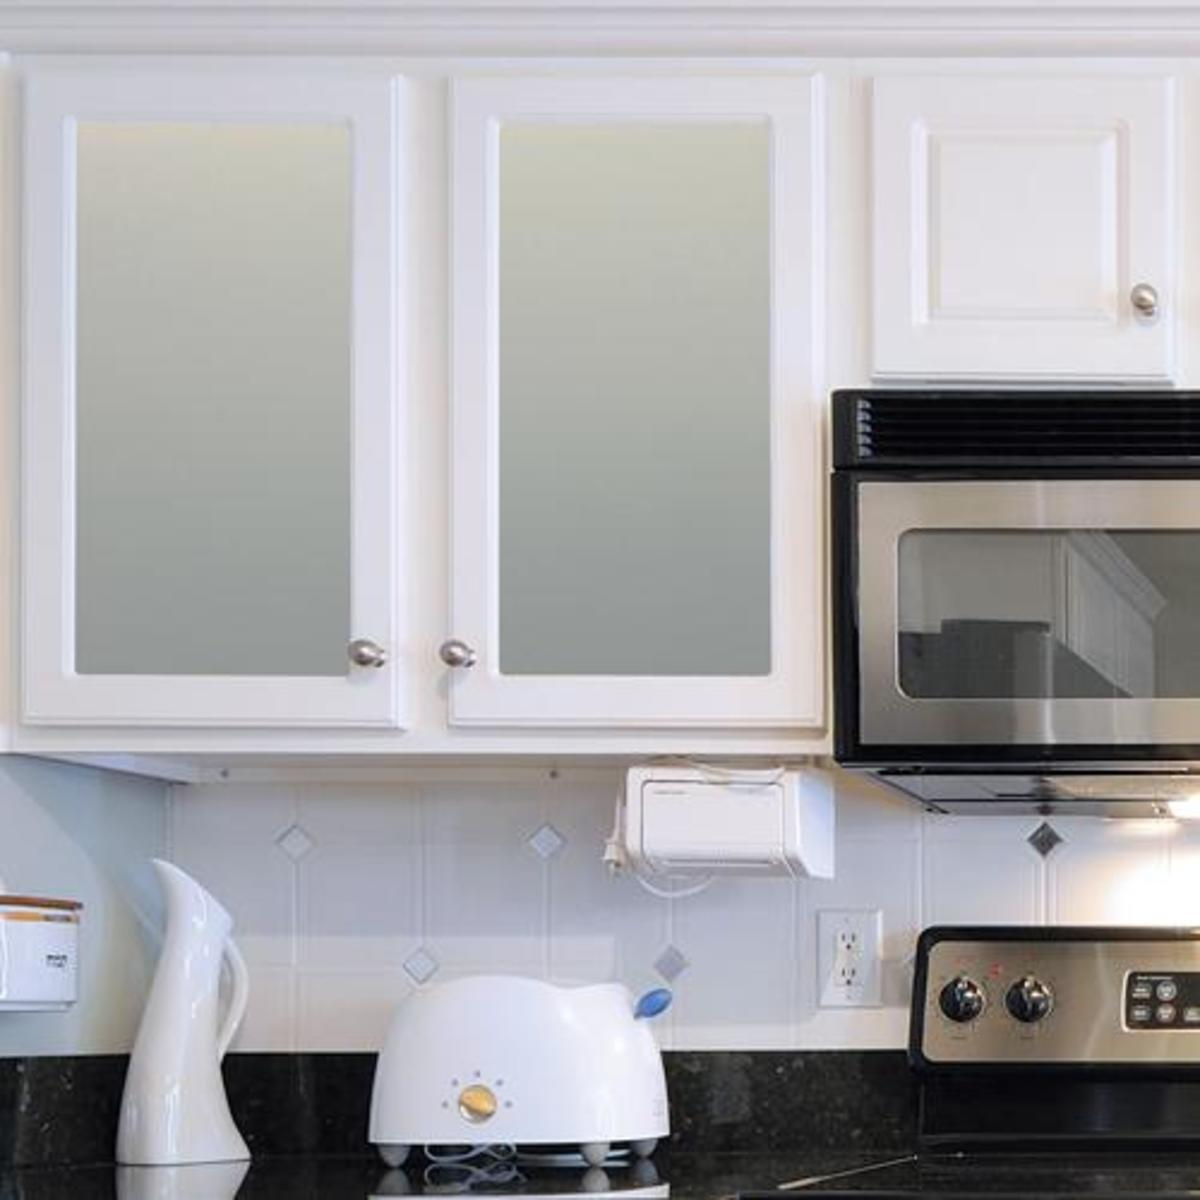 Frosted film over glass helps to obscure your  disorderly kitchen cabinet contents.